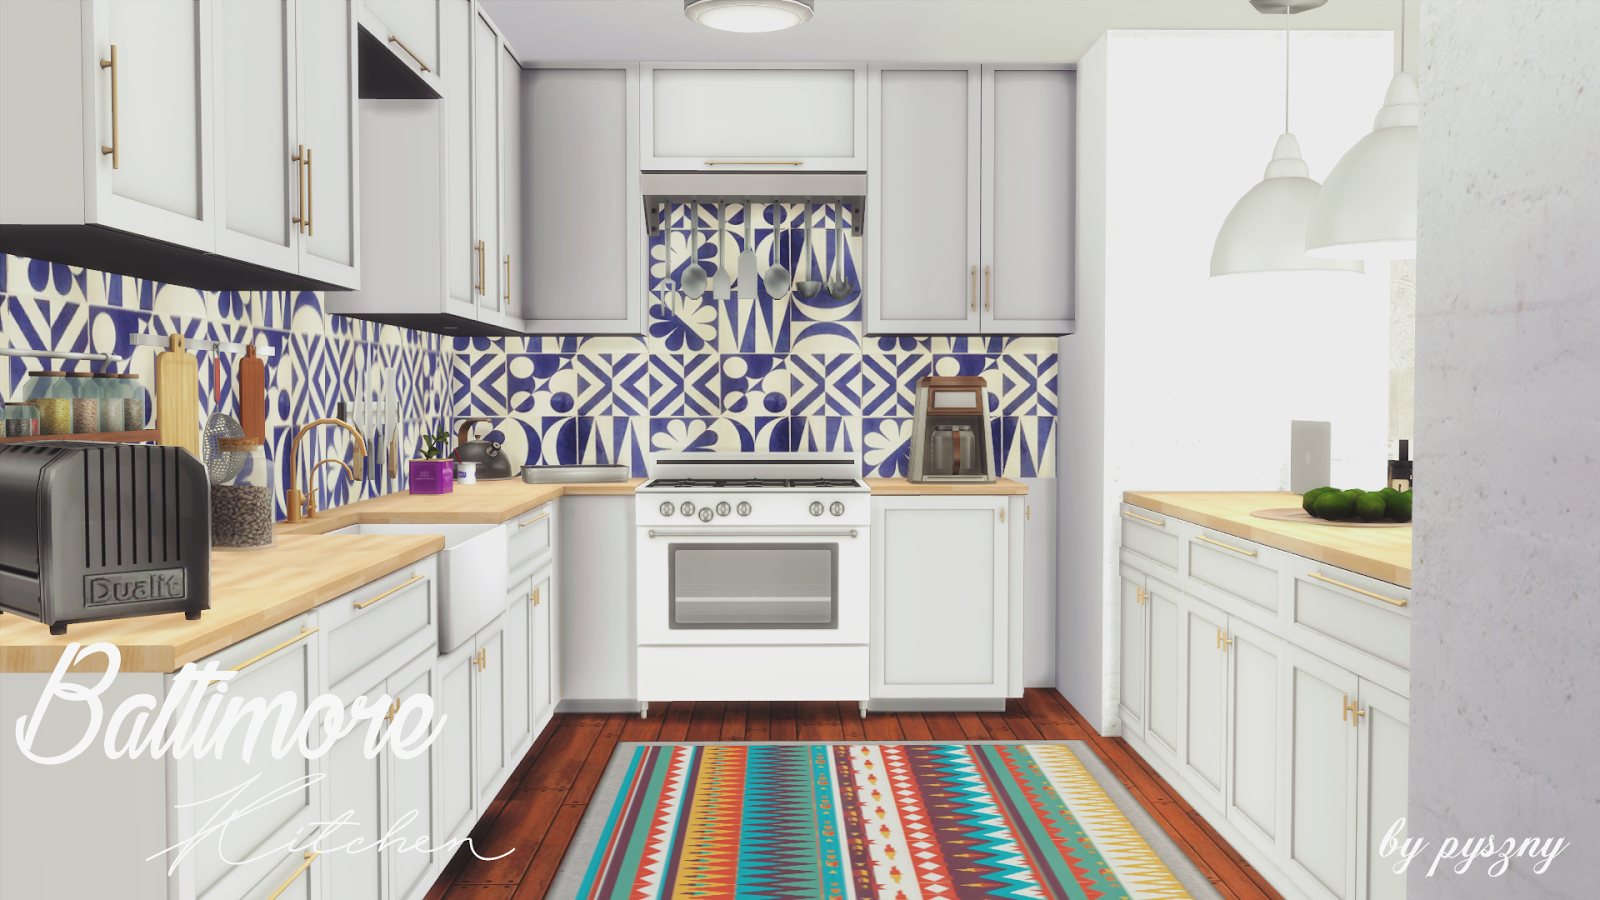 Henssler Küchenrallye Sims 4 Kitchen Cc Sims 4 Kitchen Ii Room 43 Mods For